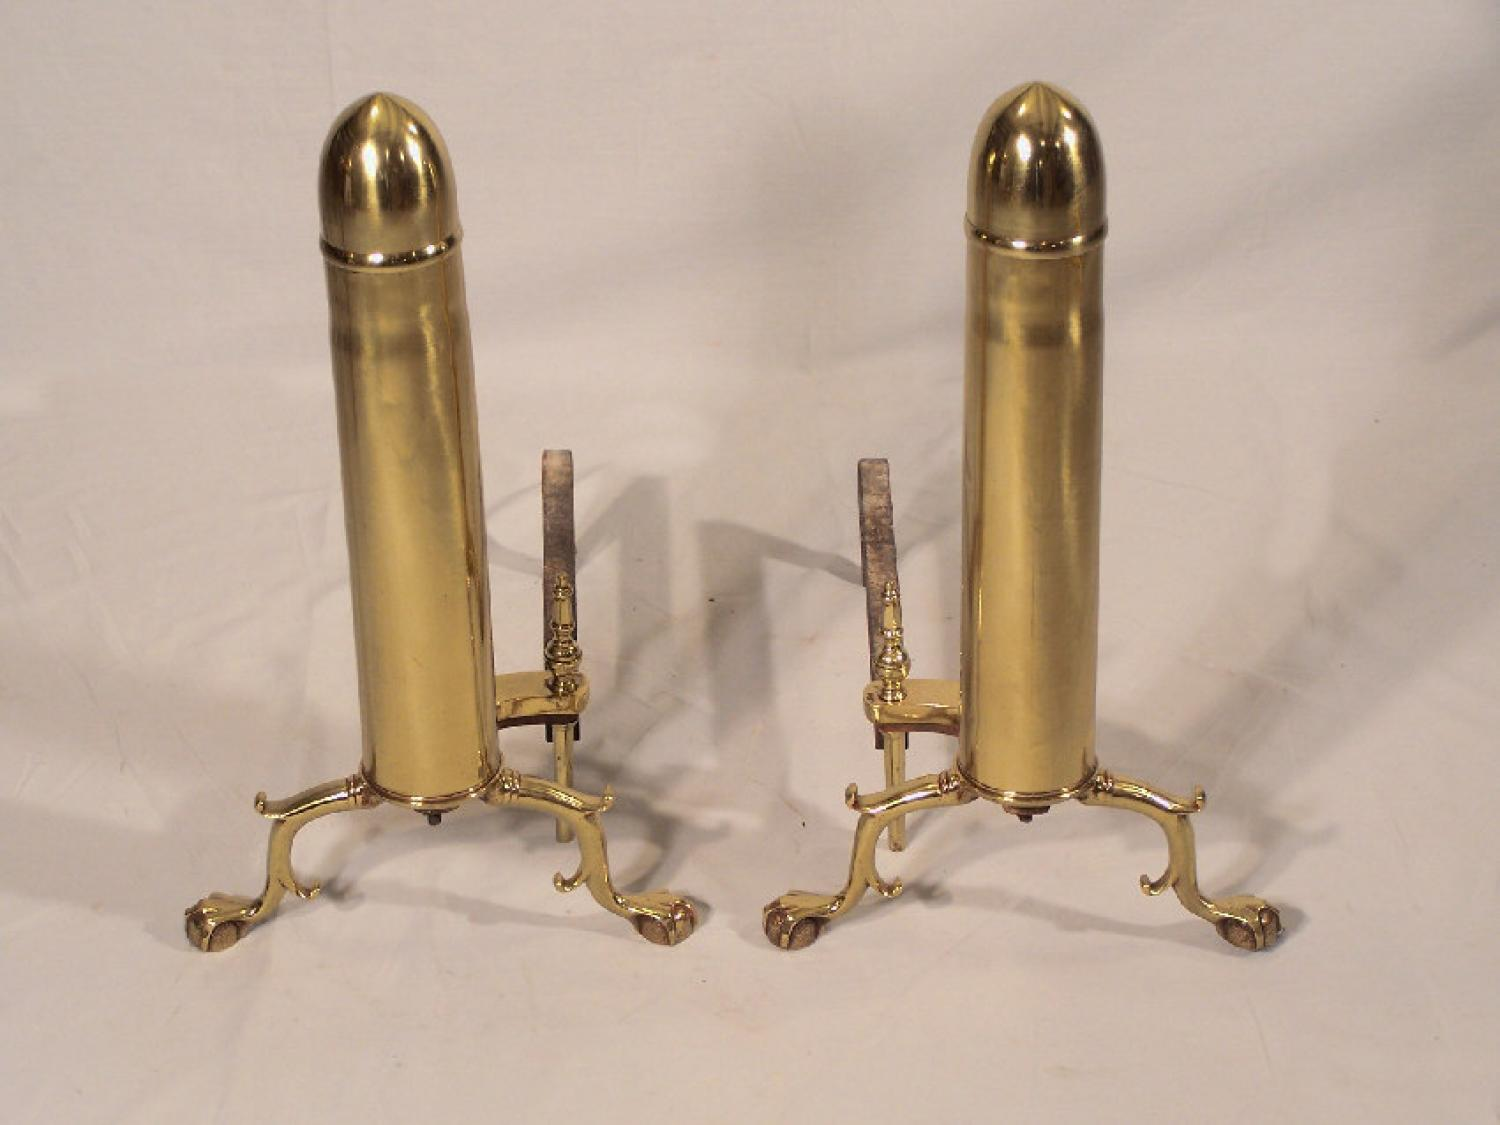 Pair of World War 1 75 mm brass shell fireplace andirons